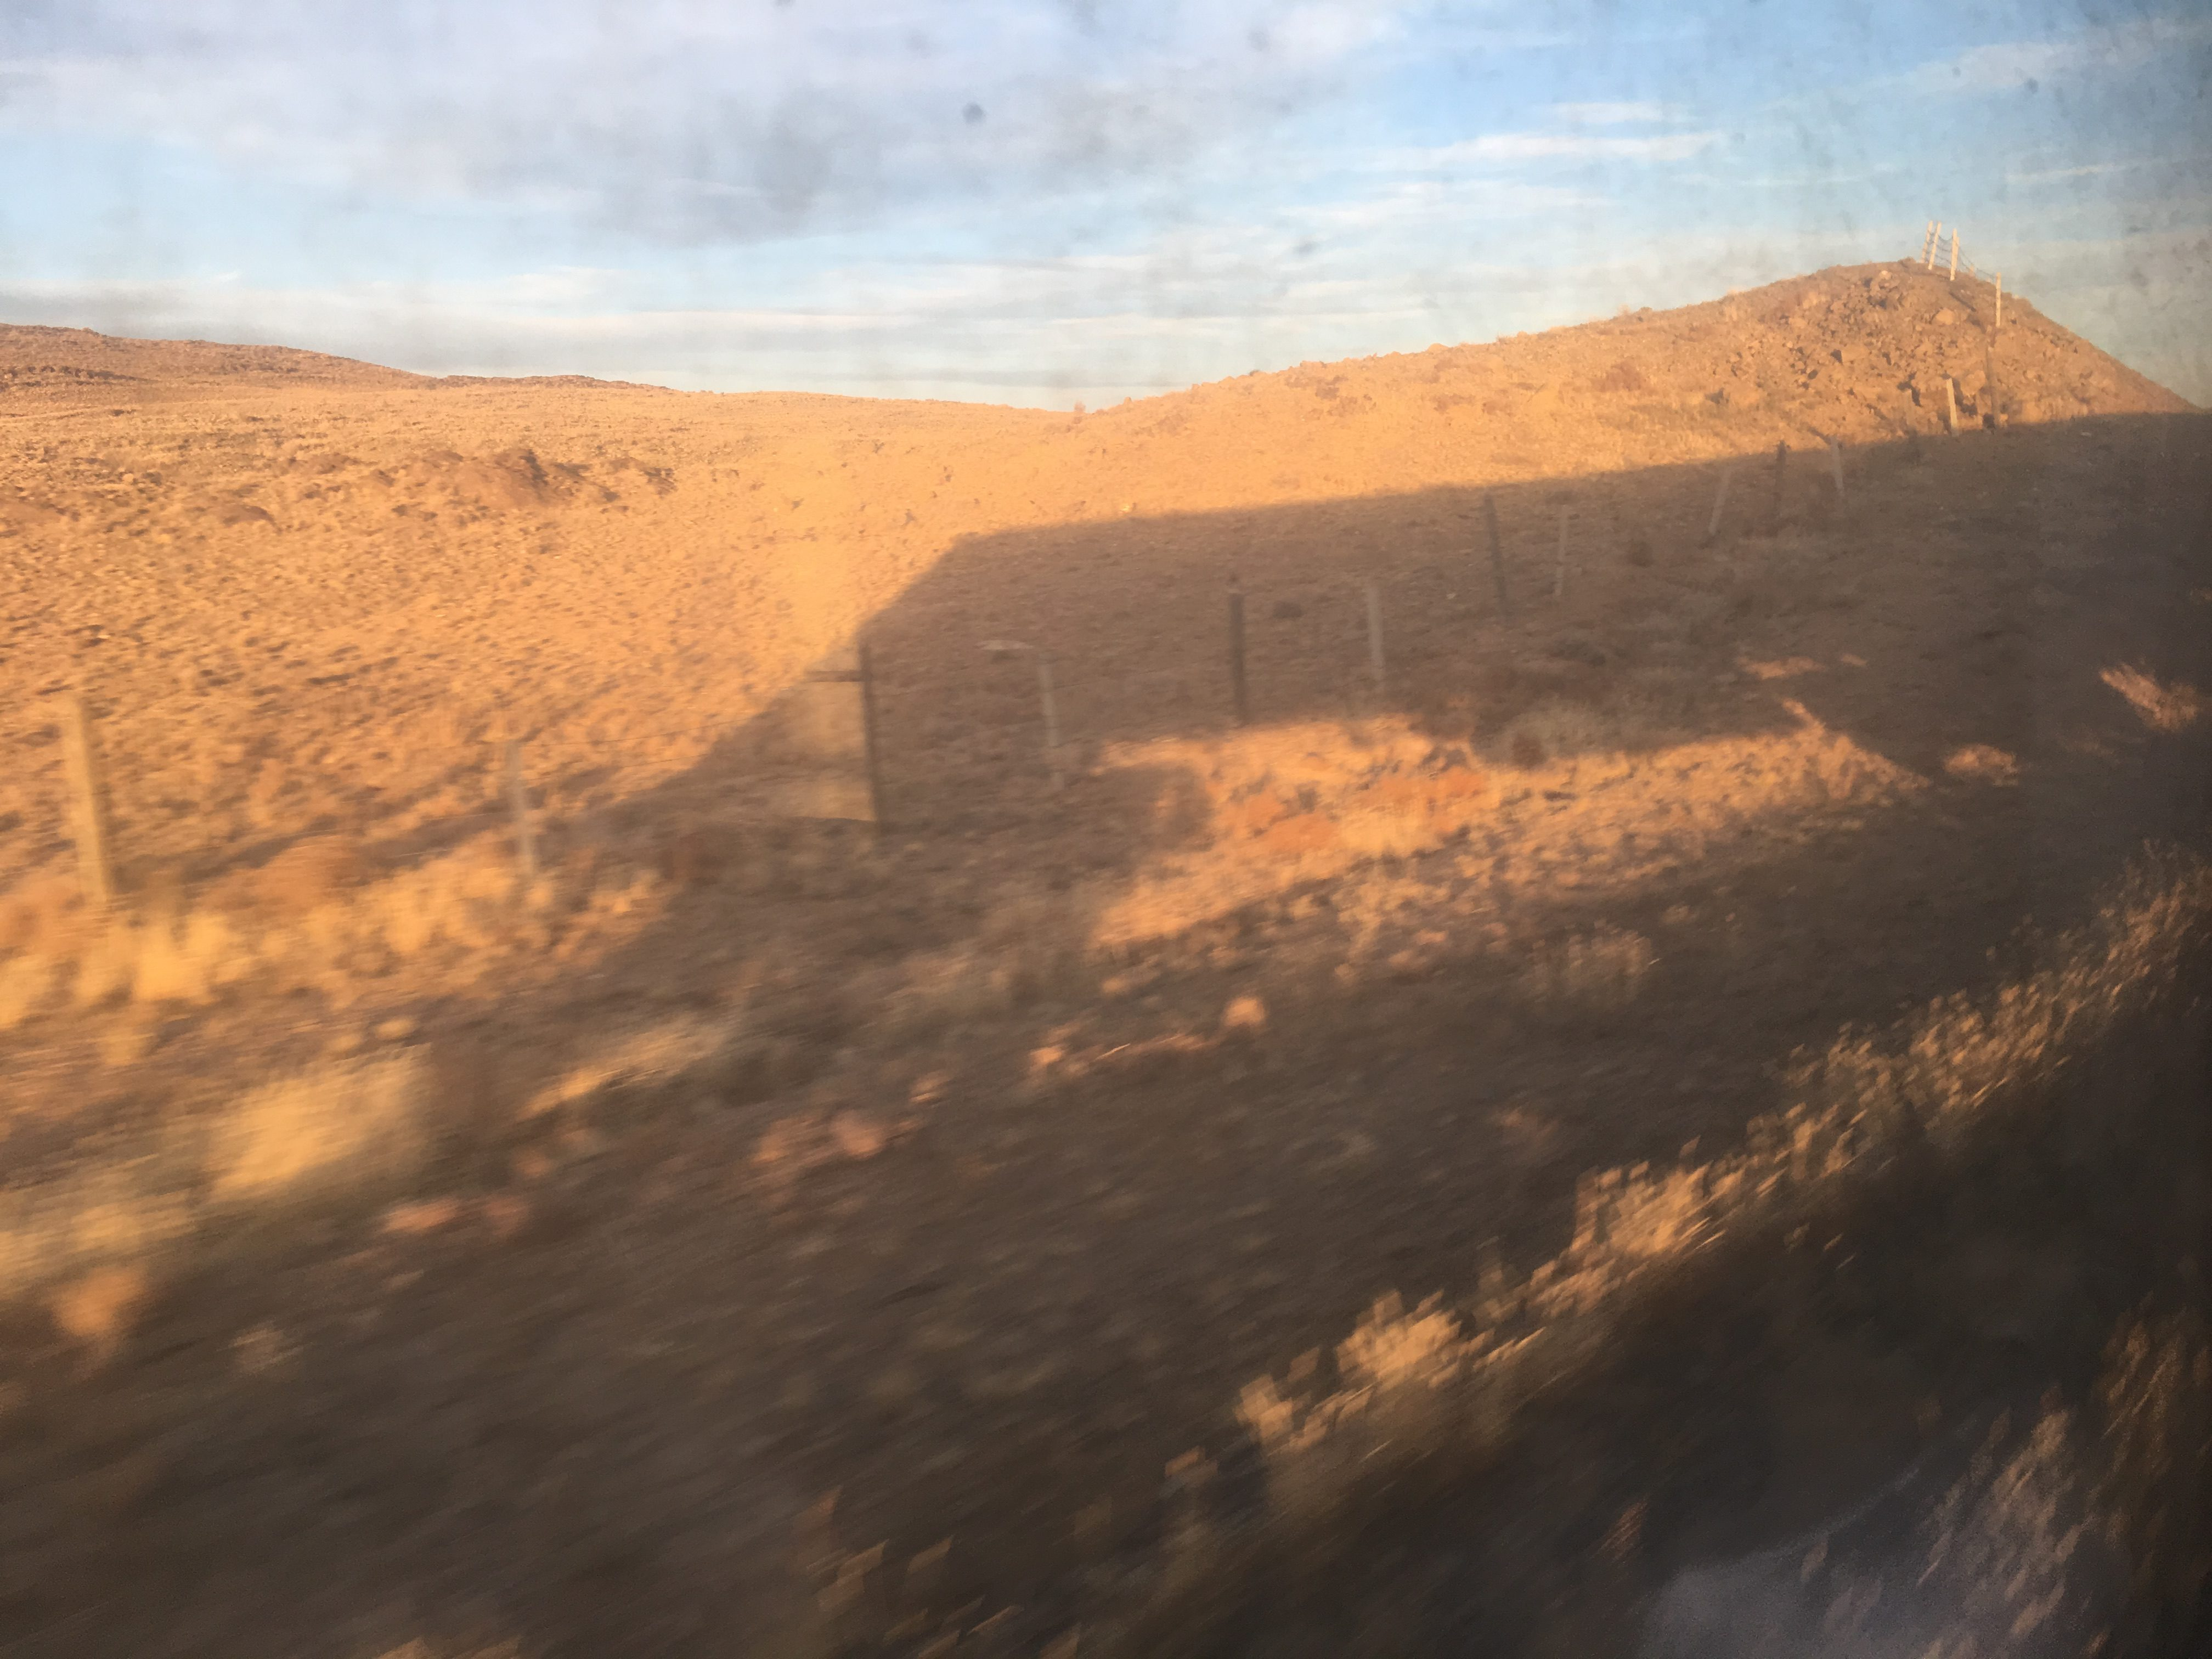 The shadow of our train crests the Mongolian hill